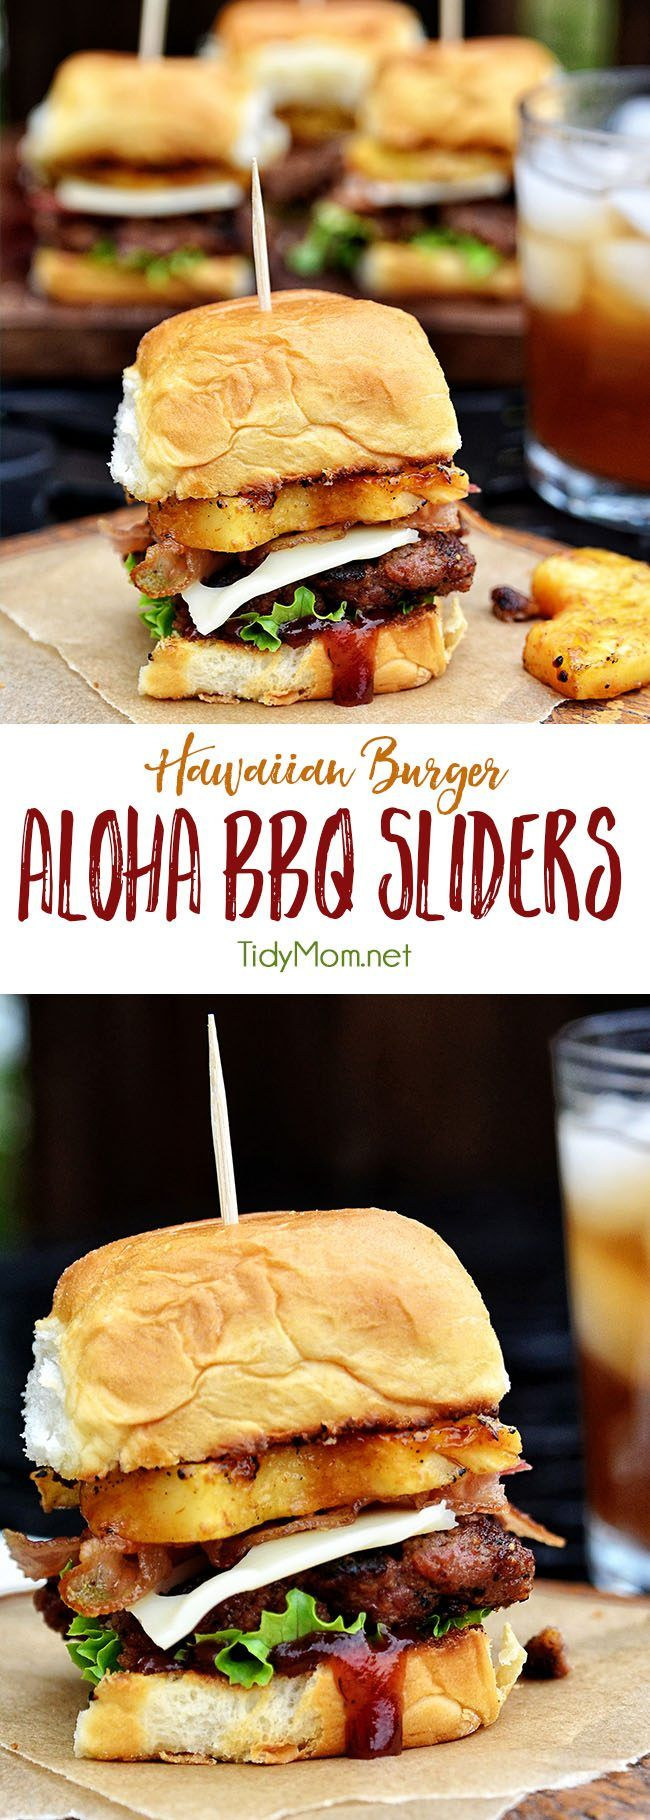 Fire up the grill for this Hawaiian burger recipe. Aloha BBQ Sliders are flavored with BBQ sauce, served on sweet rolls with cheese, pineapple and bacon. Aloha BBQ Sliders recipe at TidyMom.net